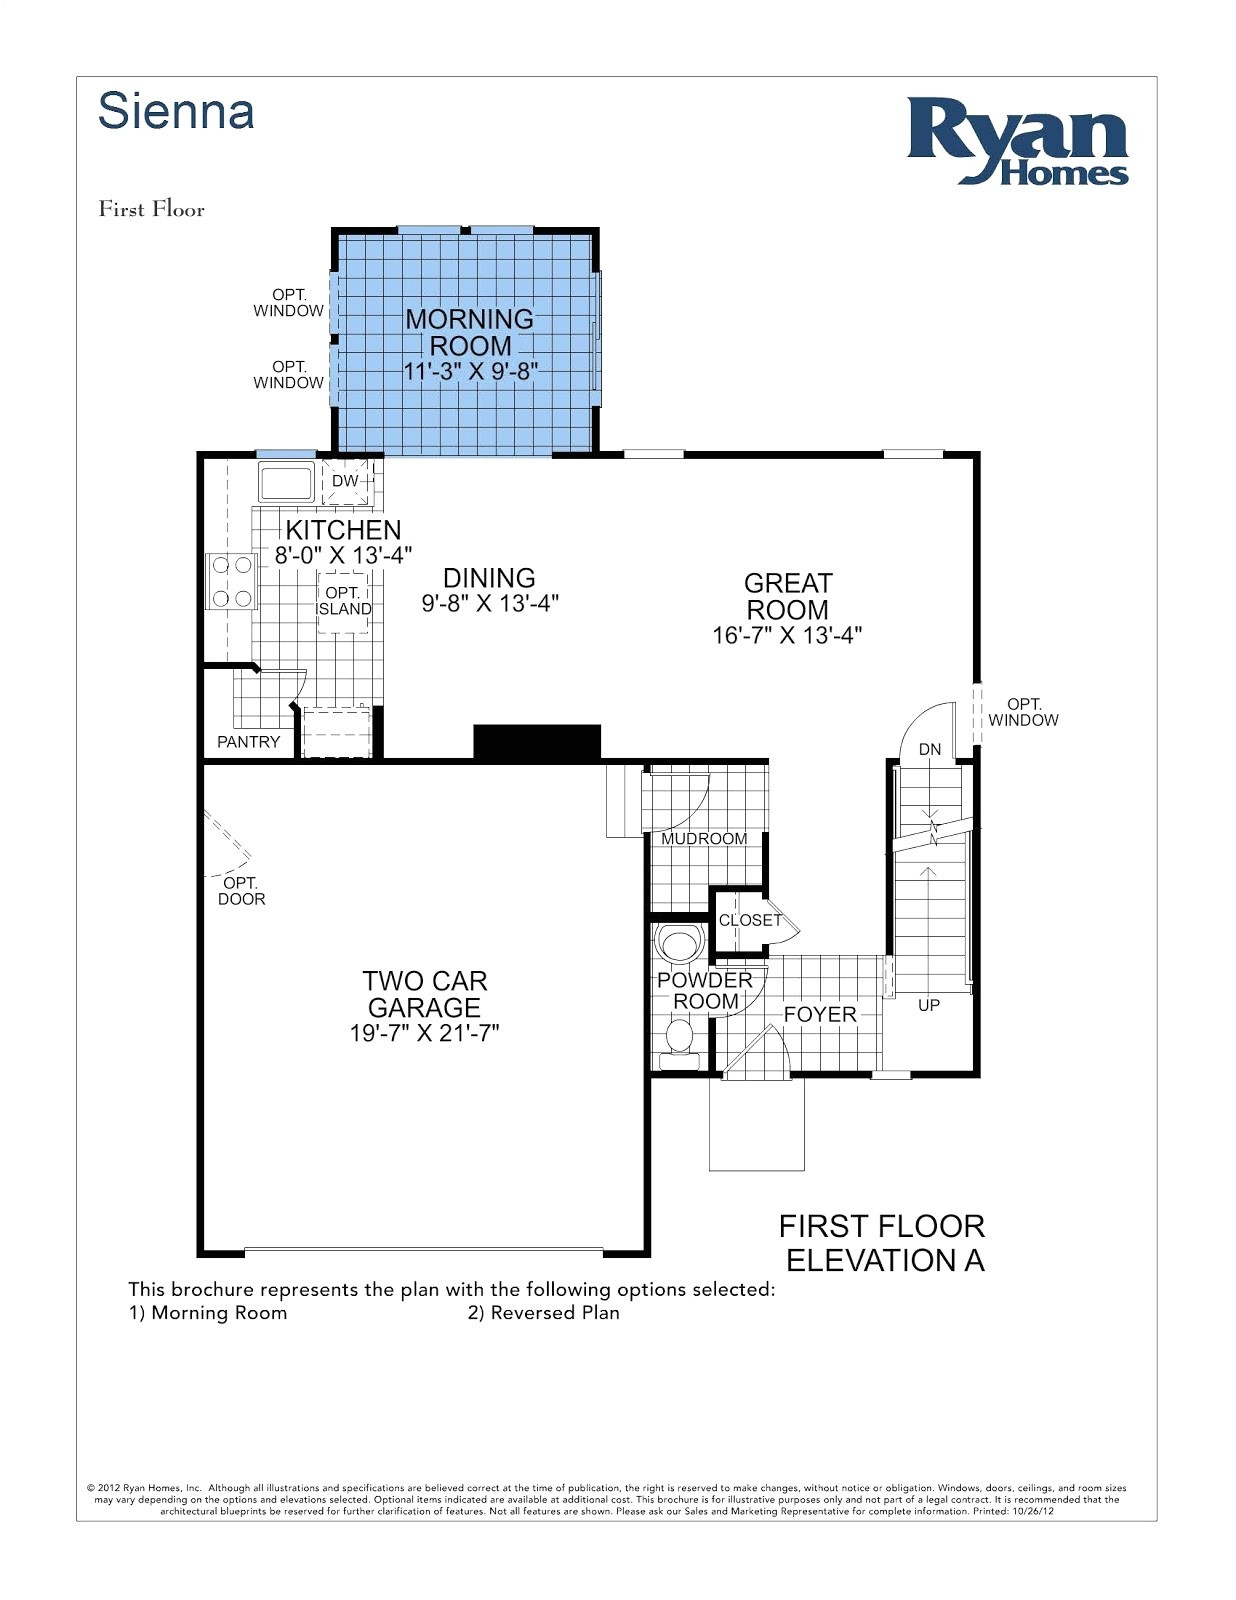 ryan homes avalon floor plan awesome 57 awesome ryan homes florence floor plan